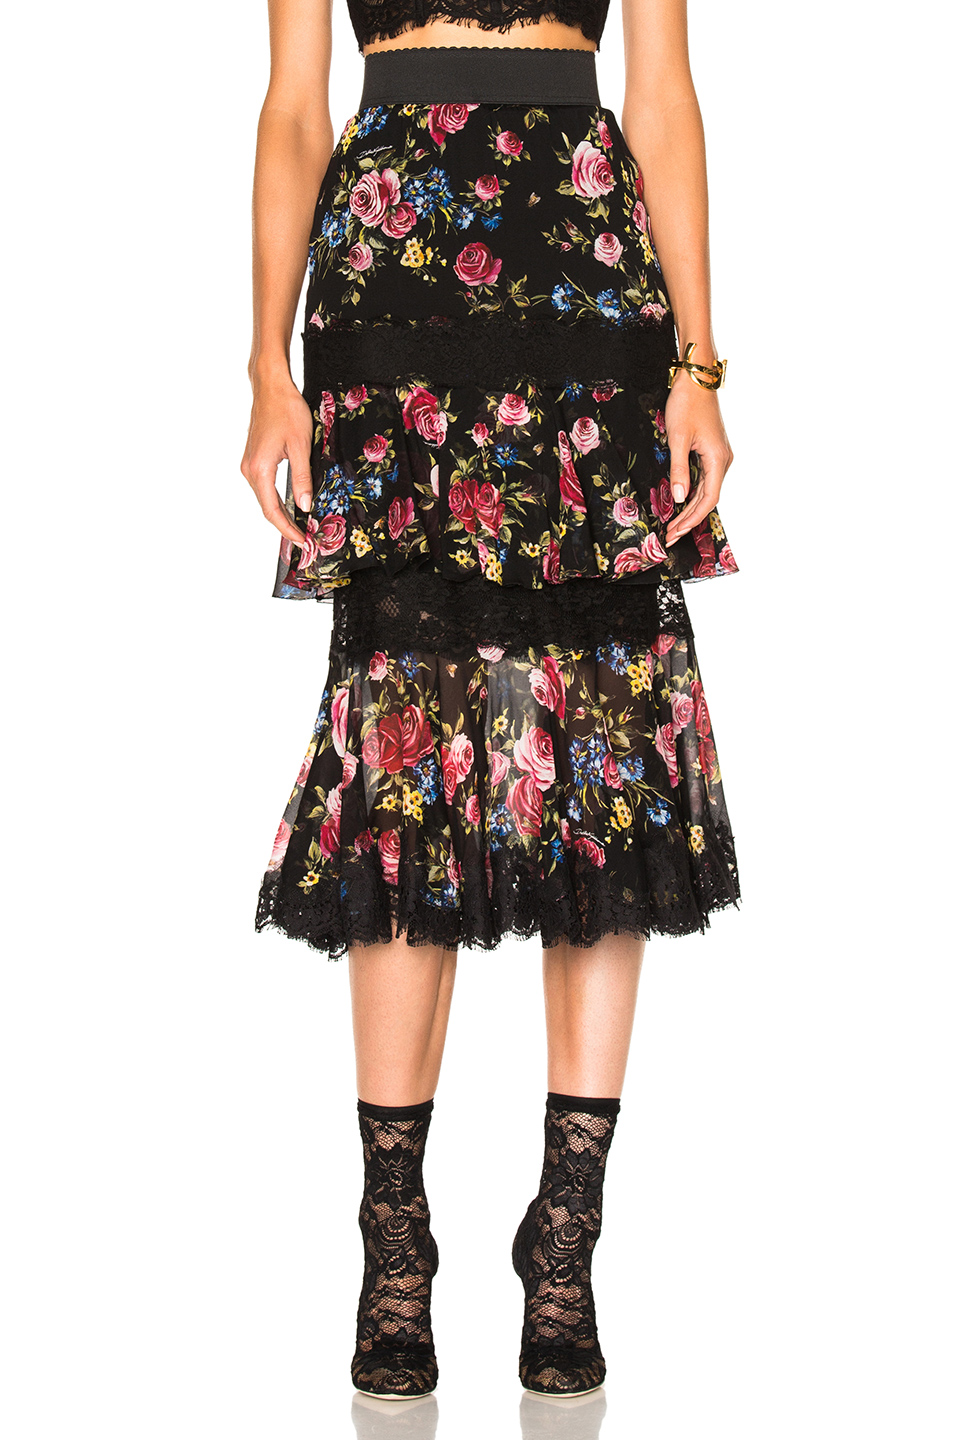 Dolce & Gabbana Tiered Skirt in Black,Floral,Pink,Red